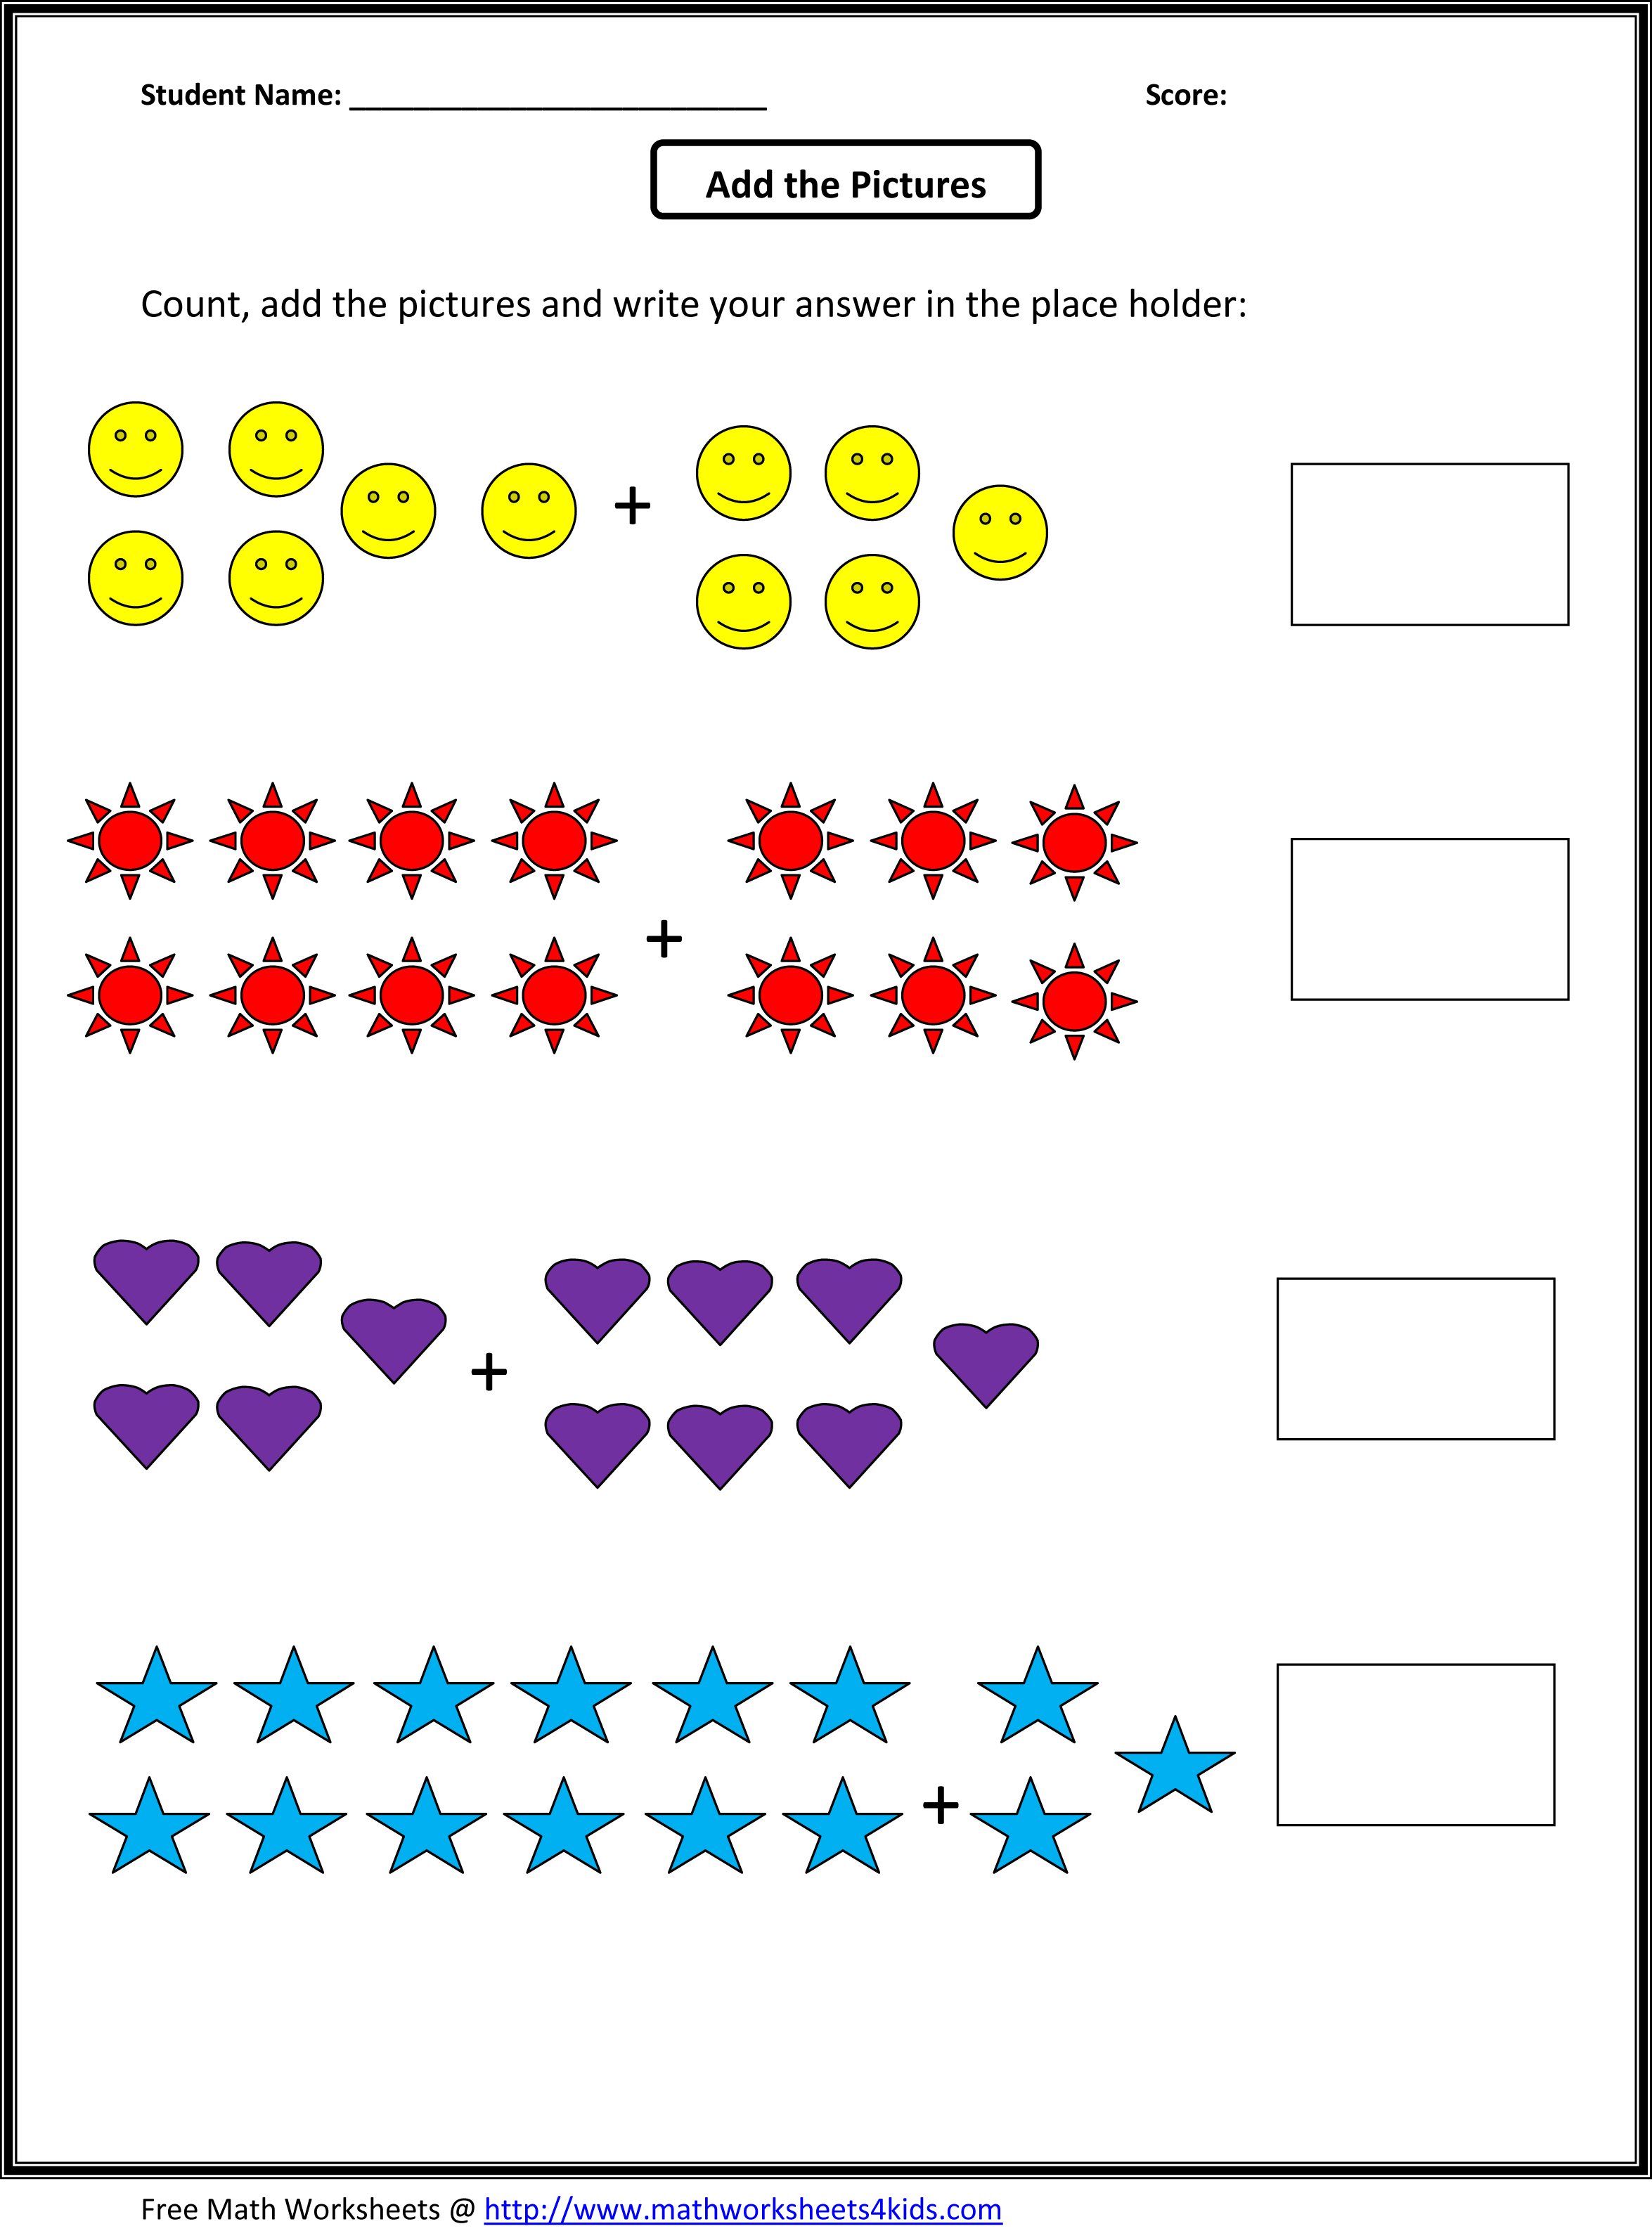 Weirdmailus  Seductive Grade  Maths Worksheet  Reocurent With Fascinating Math Worksheets For St Grade Free  Reocurent With Comely Estimation Worksheets Th Grade Also Consonants Blends Worksheets In Addition Etiquette For Kids Worksheets And Free Printable Grammar Worksheets For Nd Grade As Well As Fraction Worksheets For Year  Additionally Worksheet On Seasons From Reocurentcom With Weirdmailus  Fascinating Grade  Maths Worksheet  Reocurent With Comely Math Worksheets For St Grade Free  Reocurent And Seductive Estimation Worksheets Th Grade Also Consonants Blends Worksheets In Addition Etiquette For Kids Worksheets From Reocurentcom